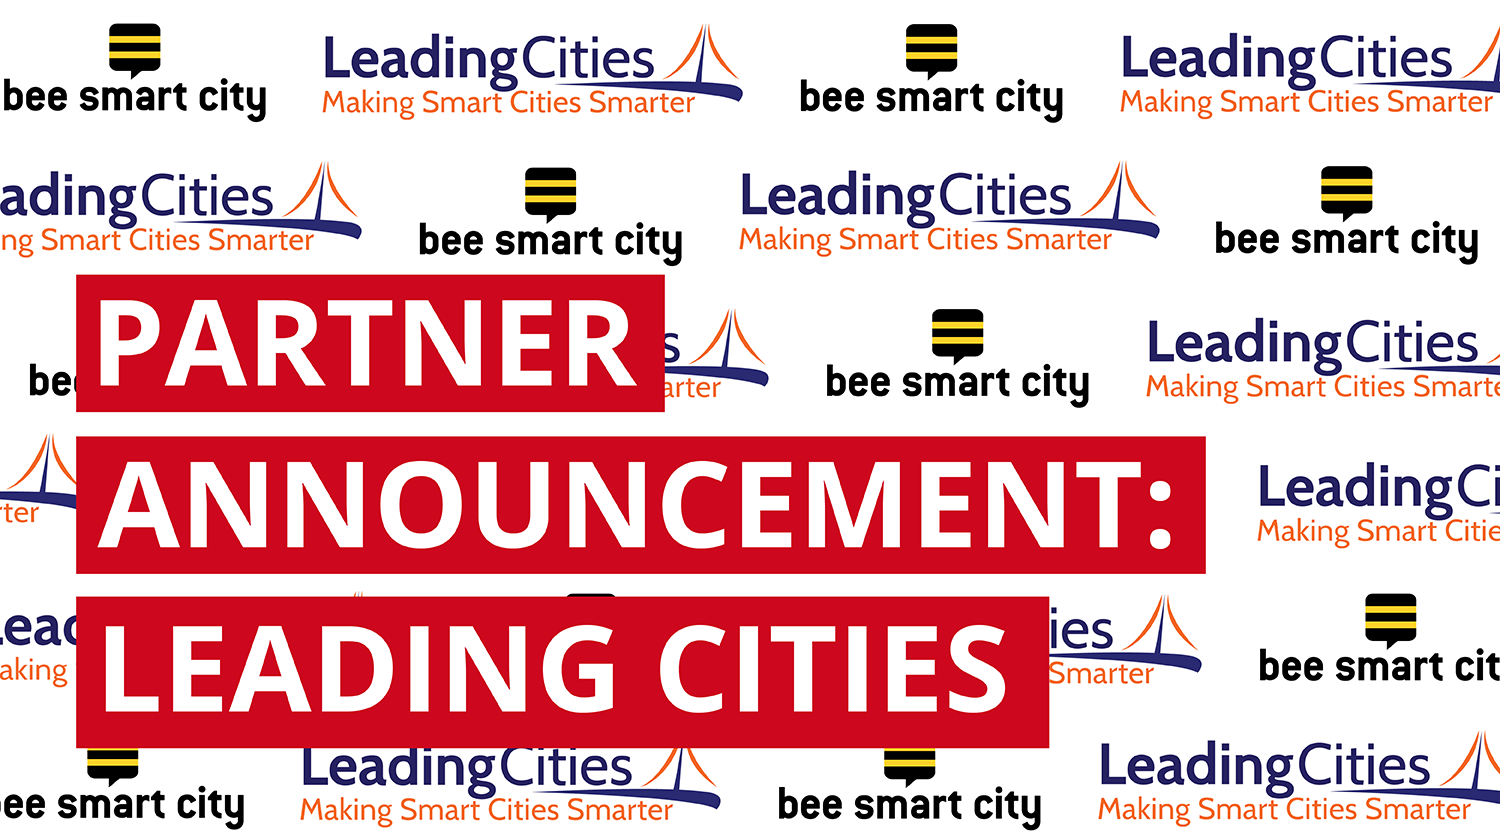 partner-announcement-leadingcities-blog.png